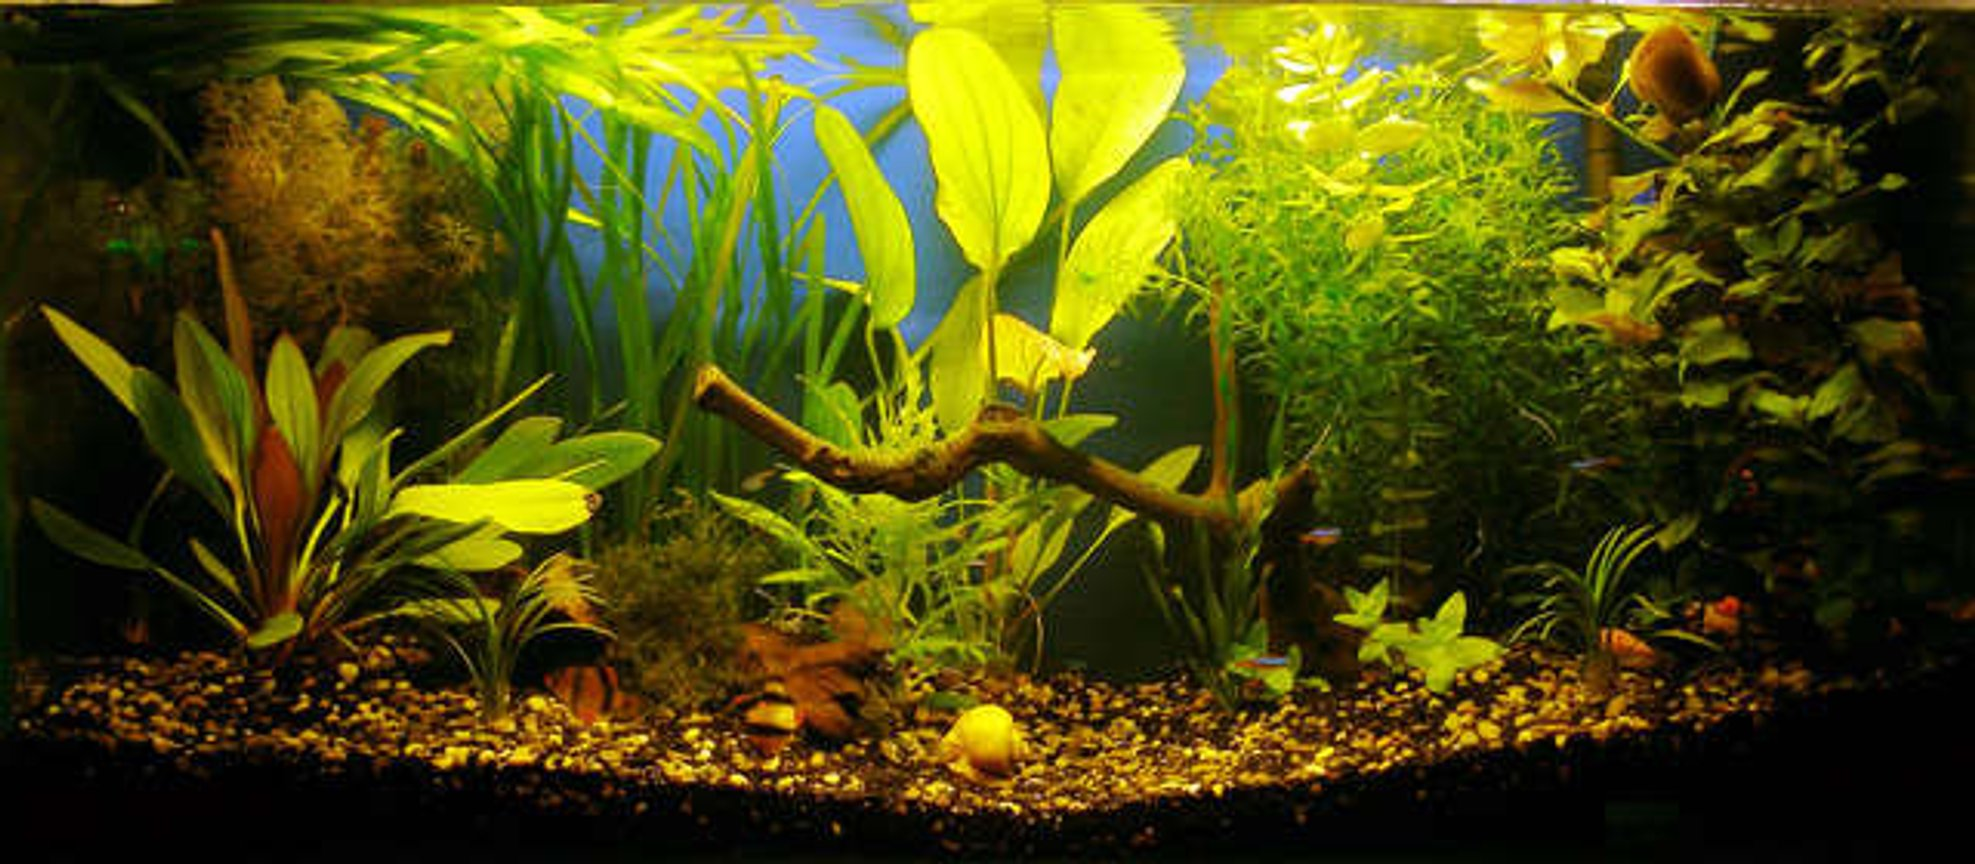 18 gallons planted tank (mostly live plants and fish) - 18 gallons community aquarium 2 x 18w philips 830 filter 600l/h